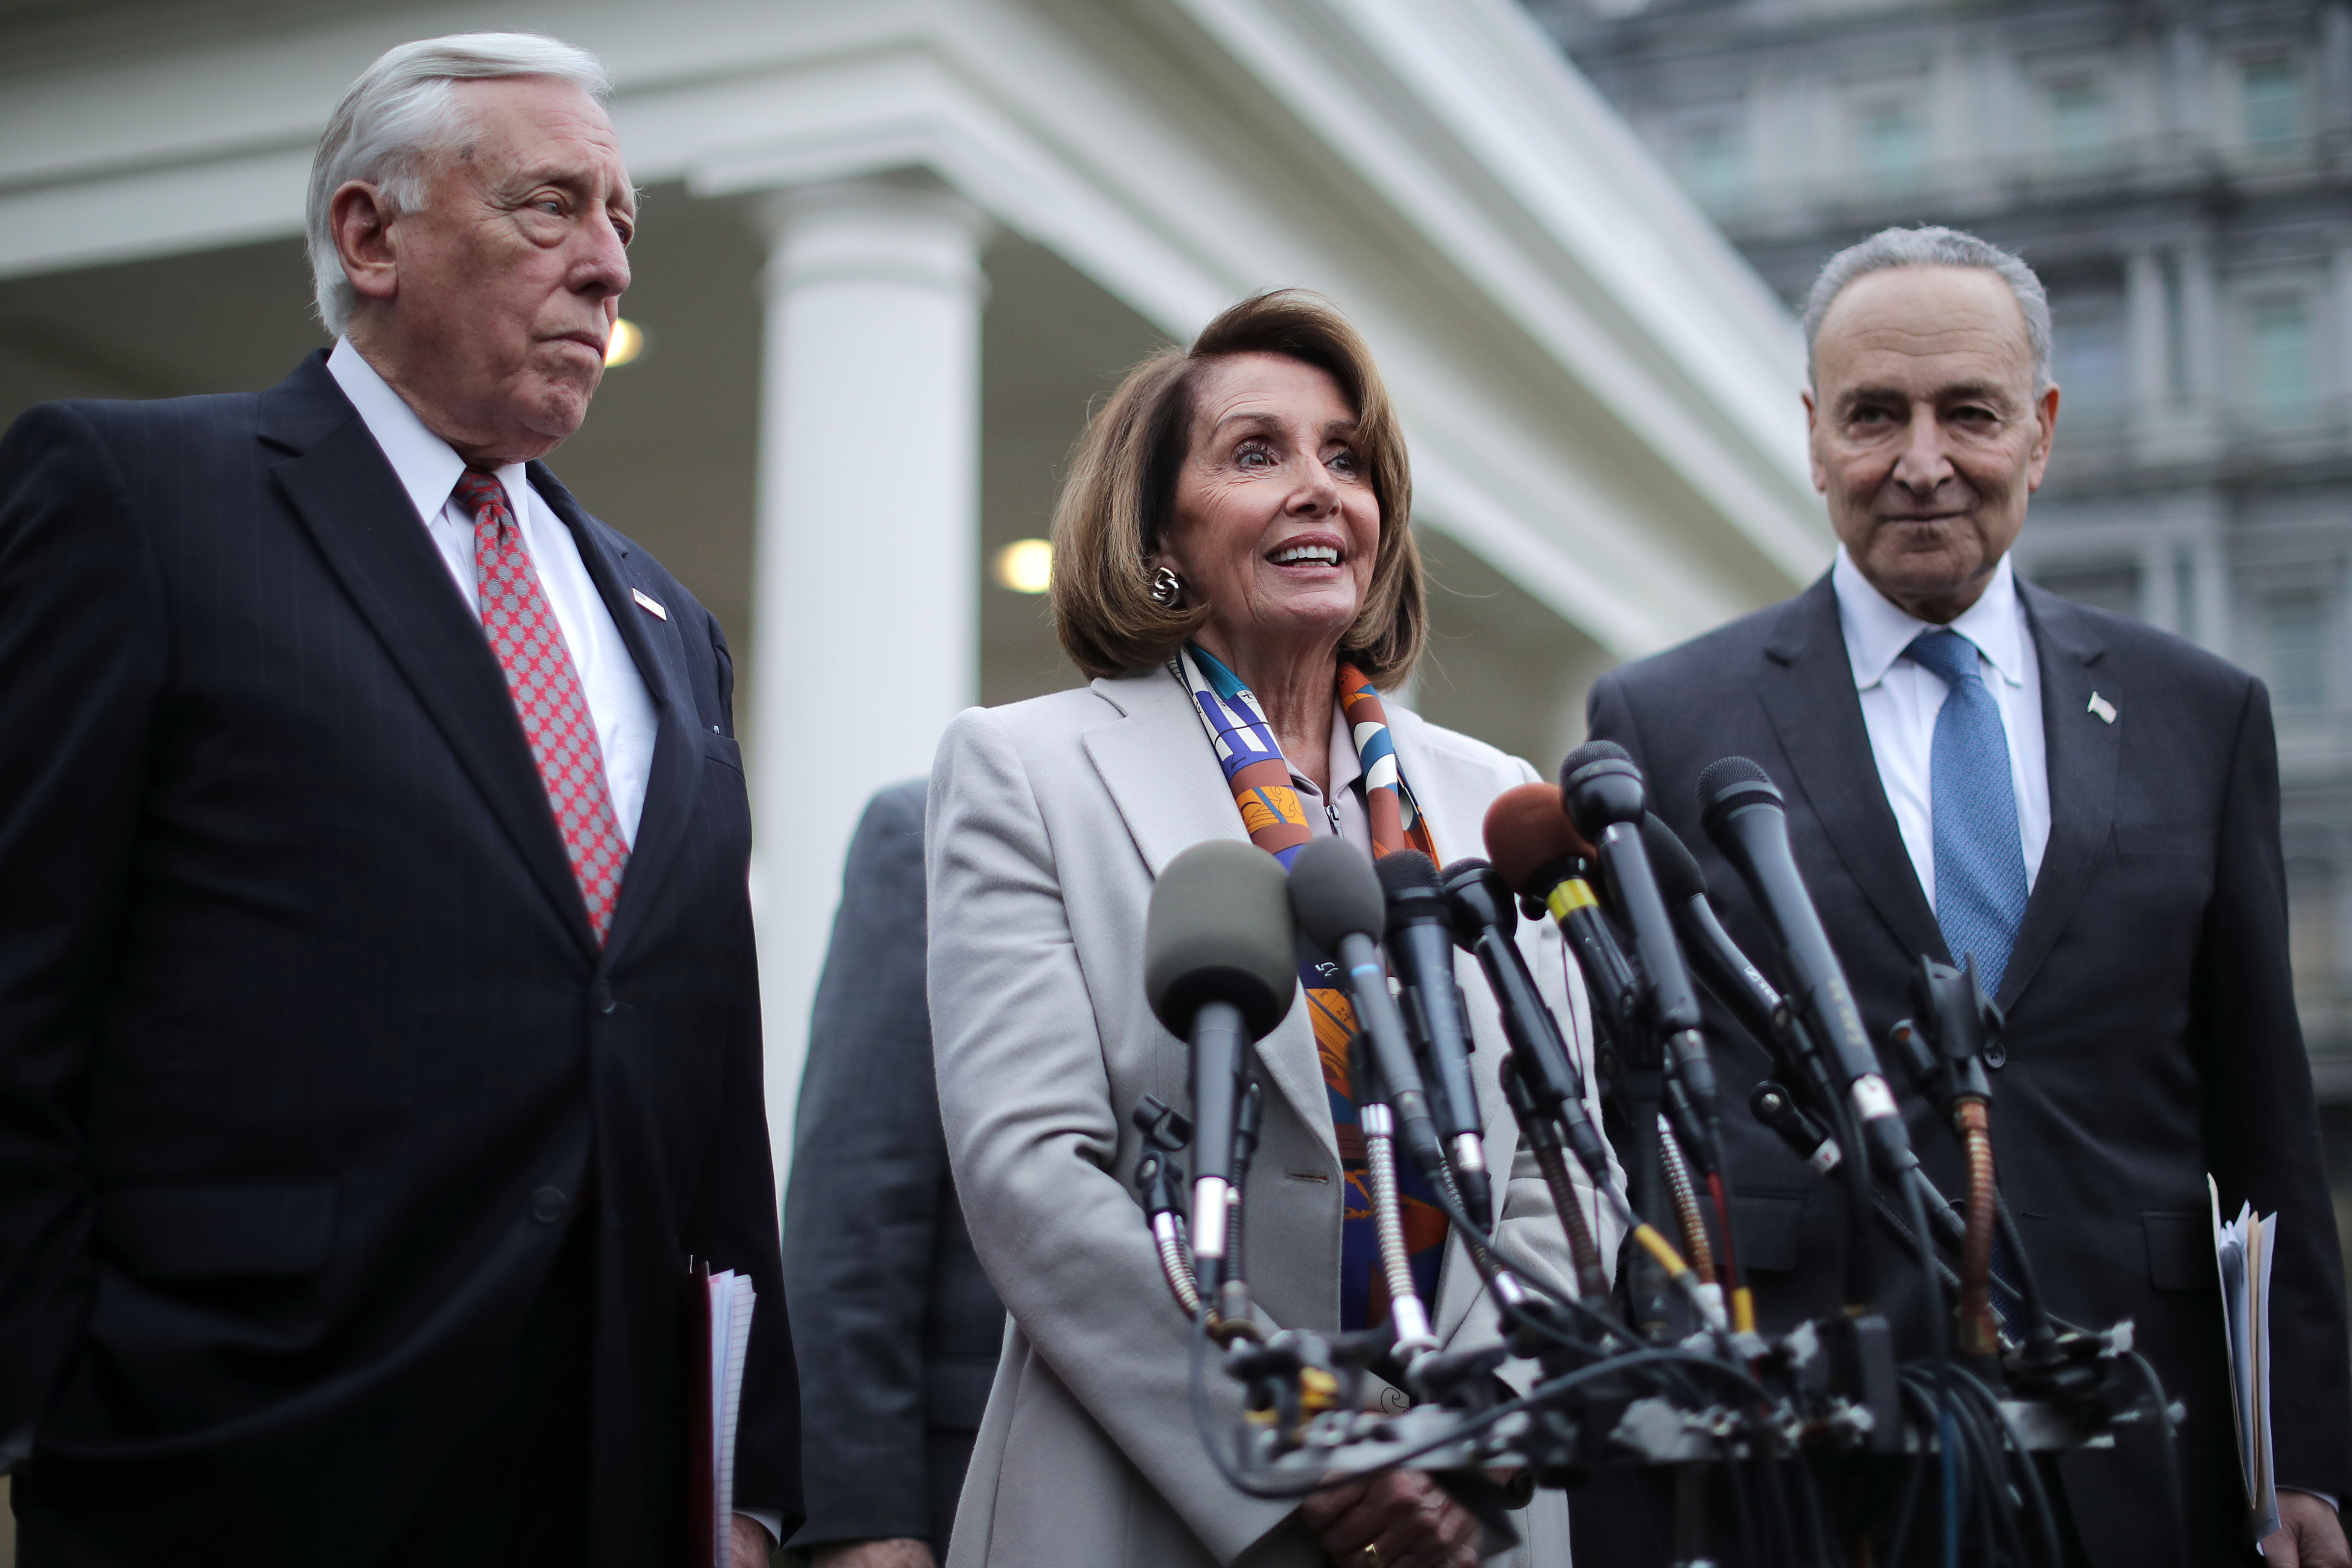 House Minority Whip Steny Hoyer, House Speaker designate Nancy Pelosi and Senate Minority Leader Charles Schumer talk to journalists (Chip Somodevilla/Getty Images)